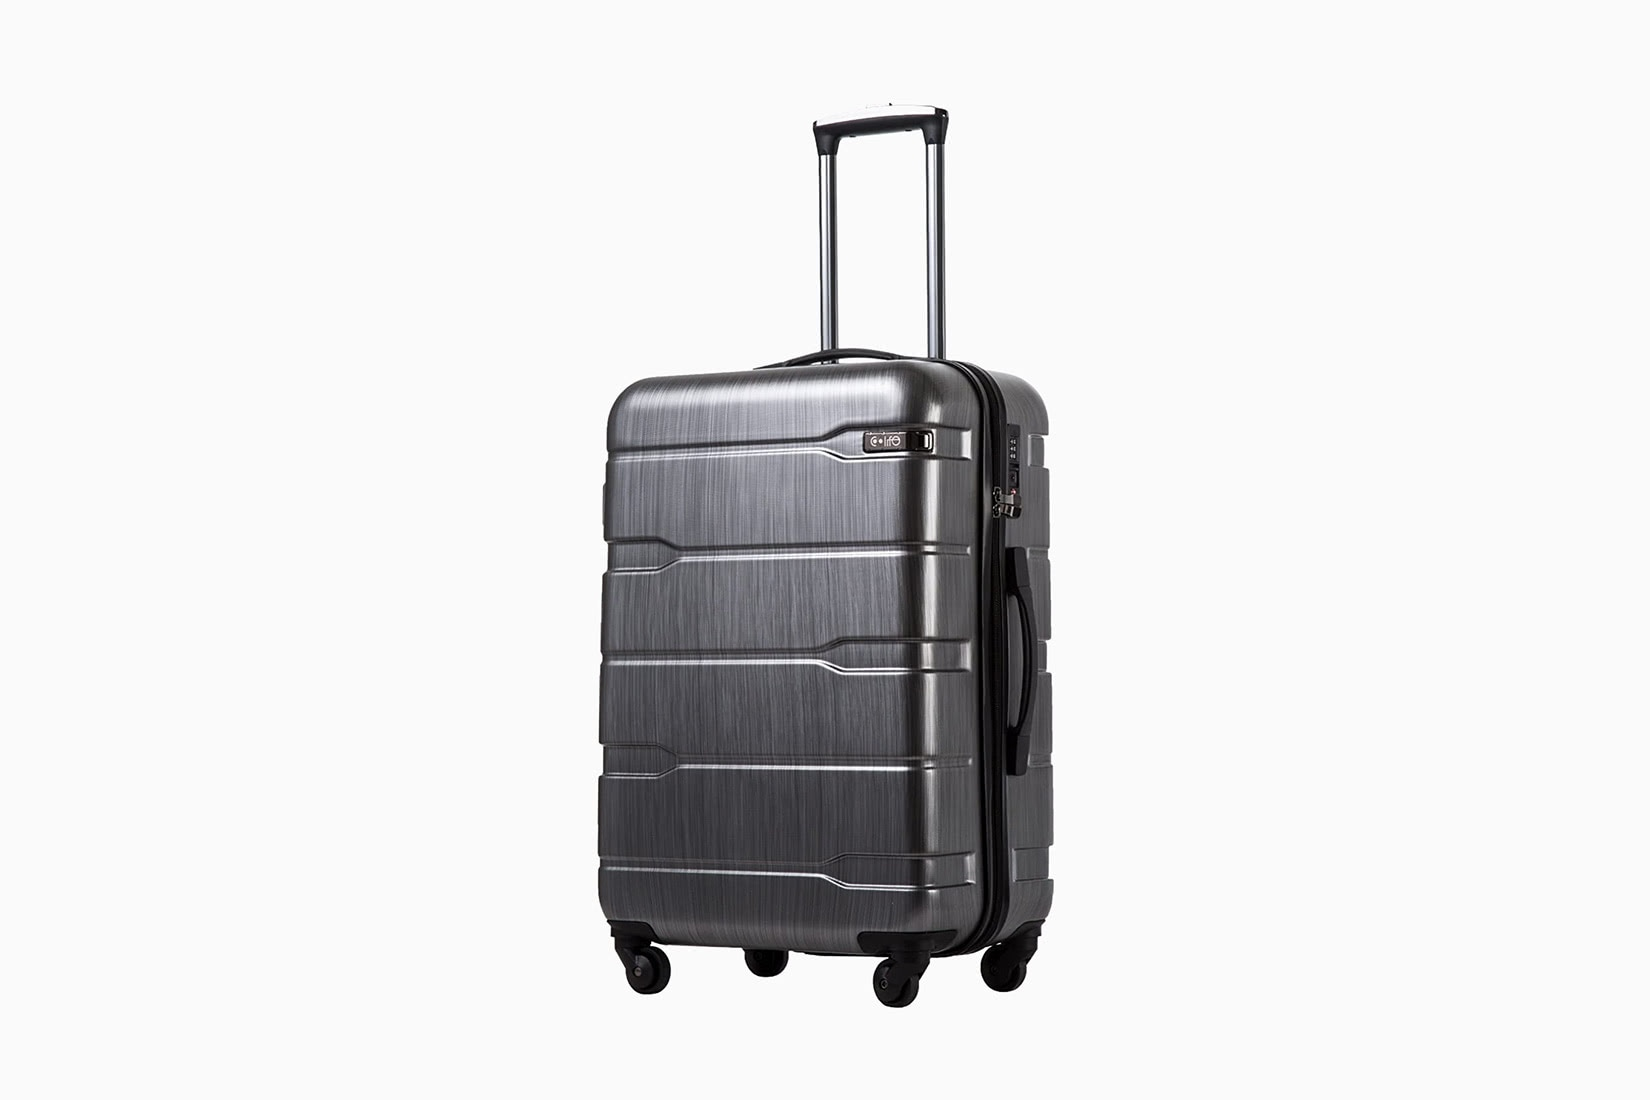 best carry-on suitcase travel usa coolife - Luxe Digital